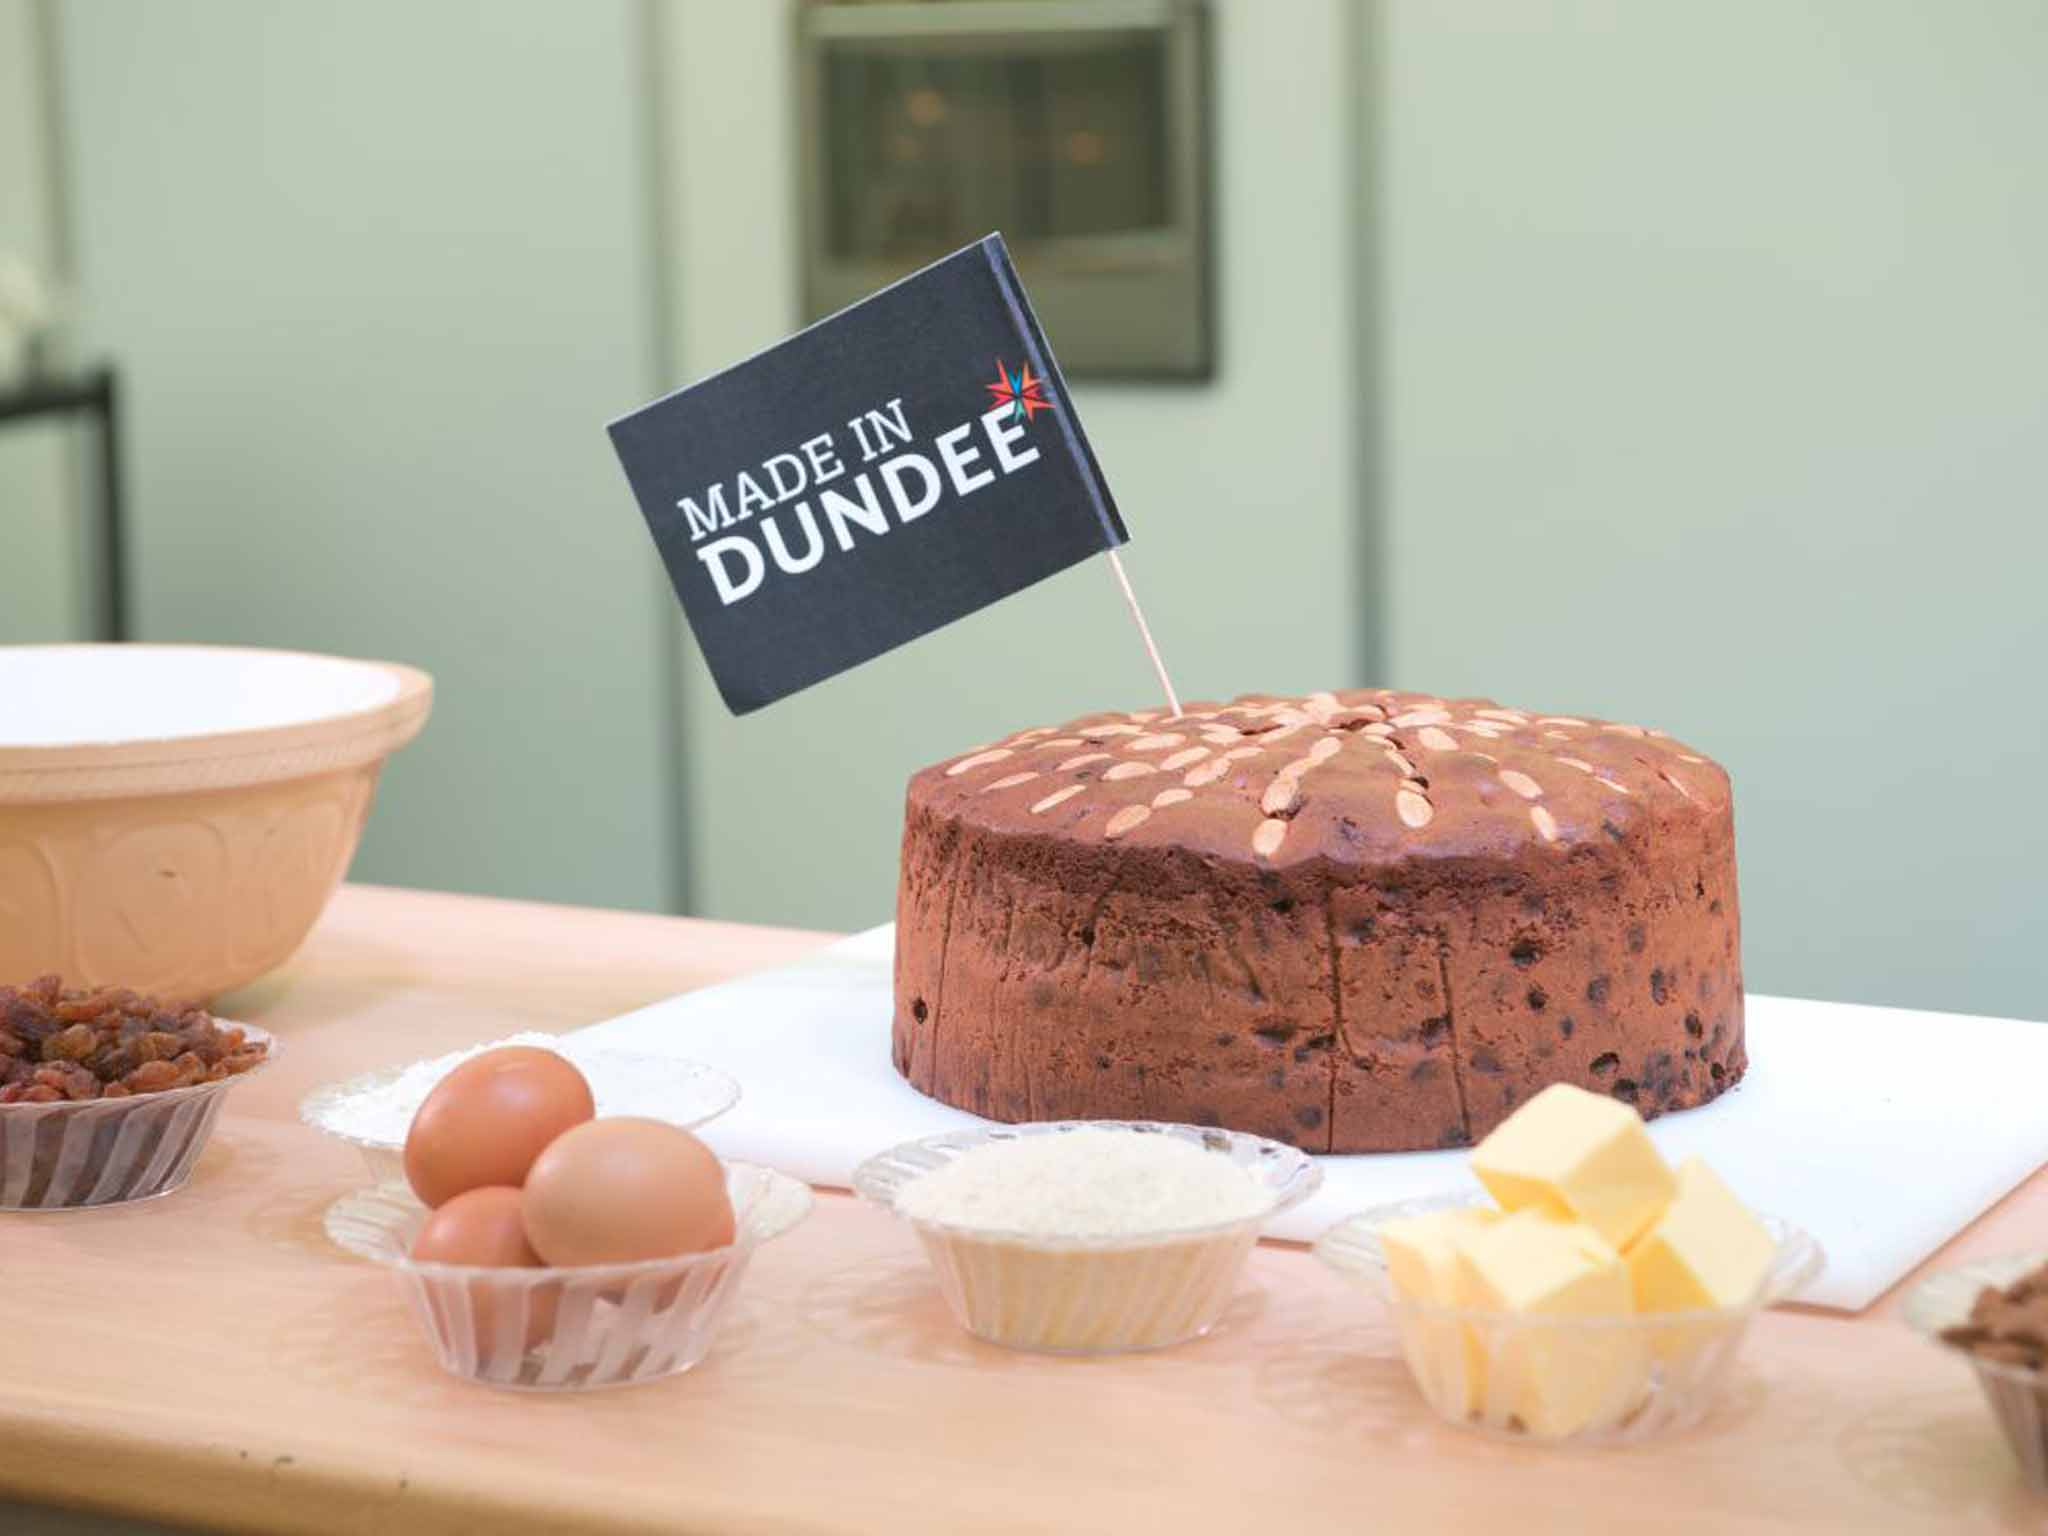 Gourmet Scotland: From food festivals and fishing breaks to pop-up restaurants and whisky trails